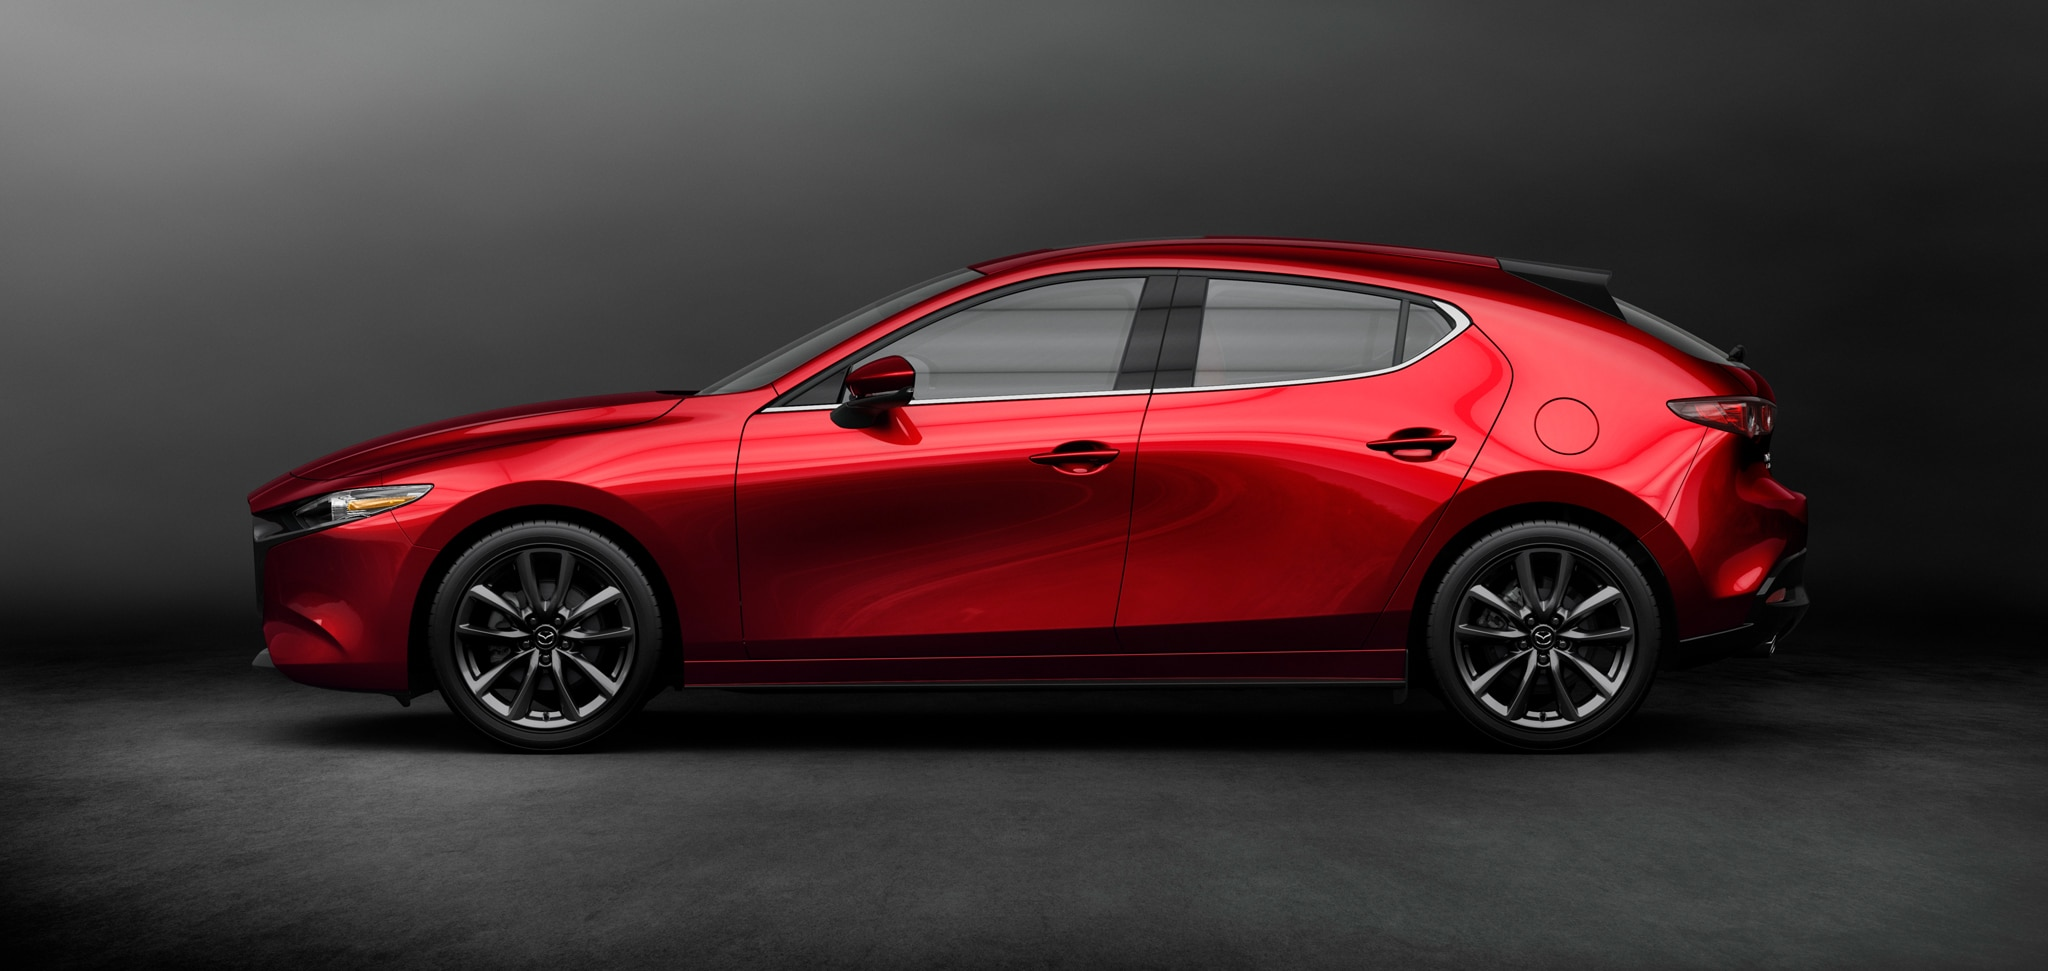 77 The Best 2020 Mazdaspeed 3 Price and Review